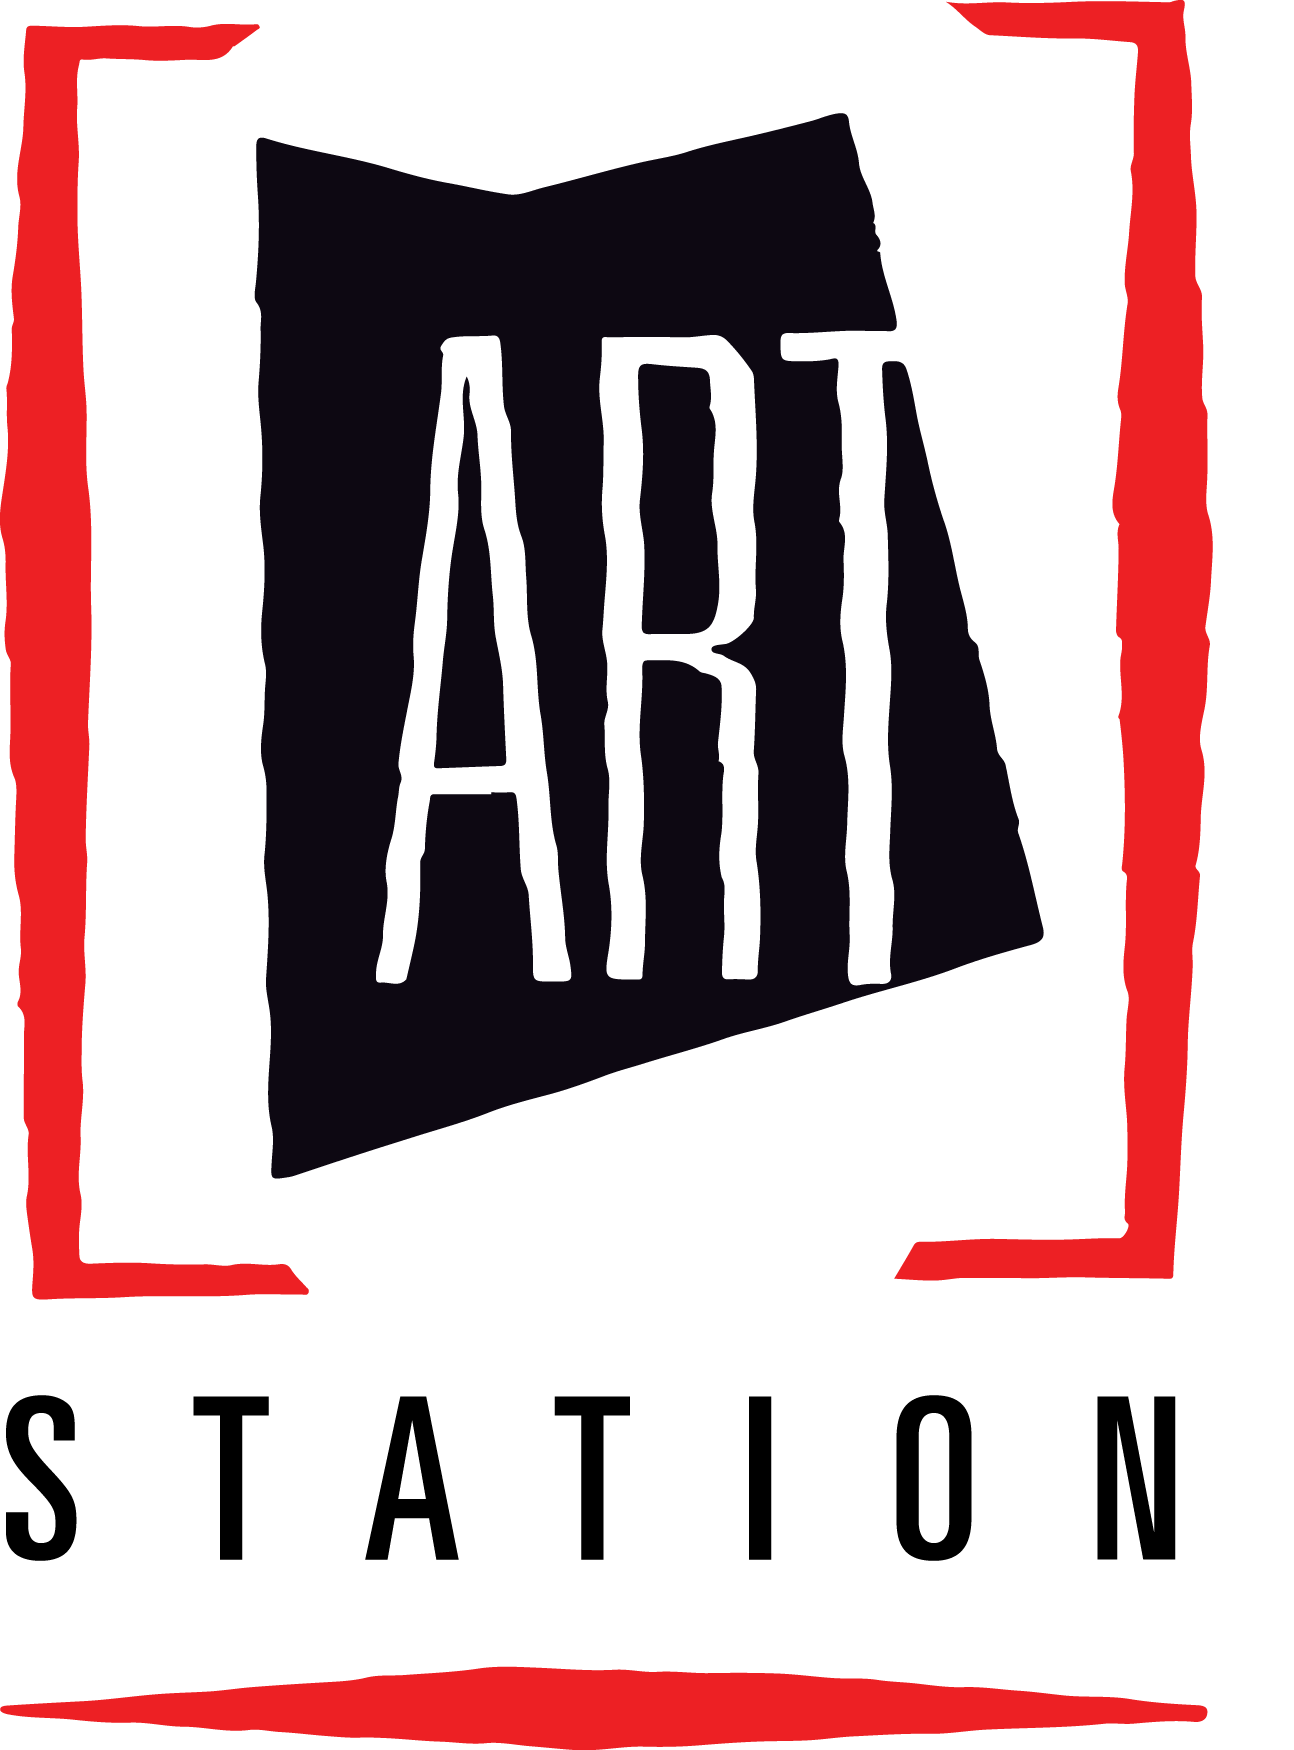 Tickets clipart theatre performance. Art station where the